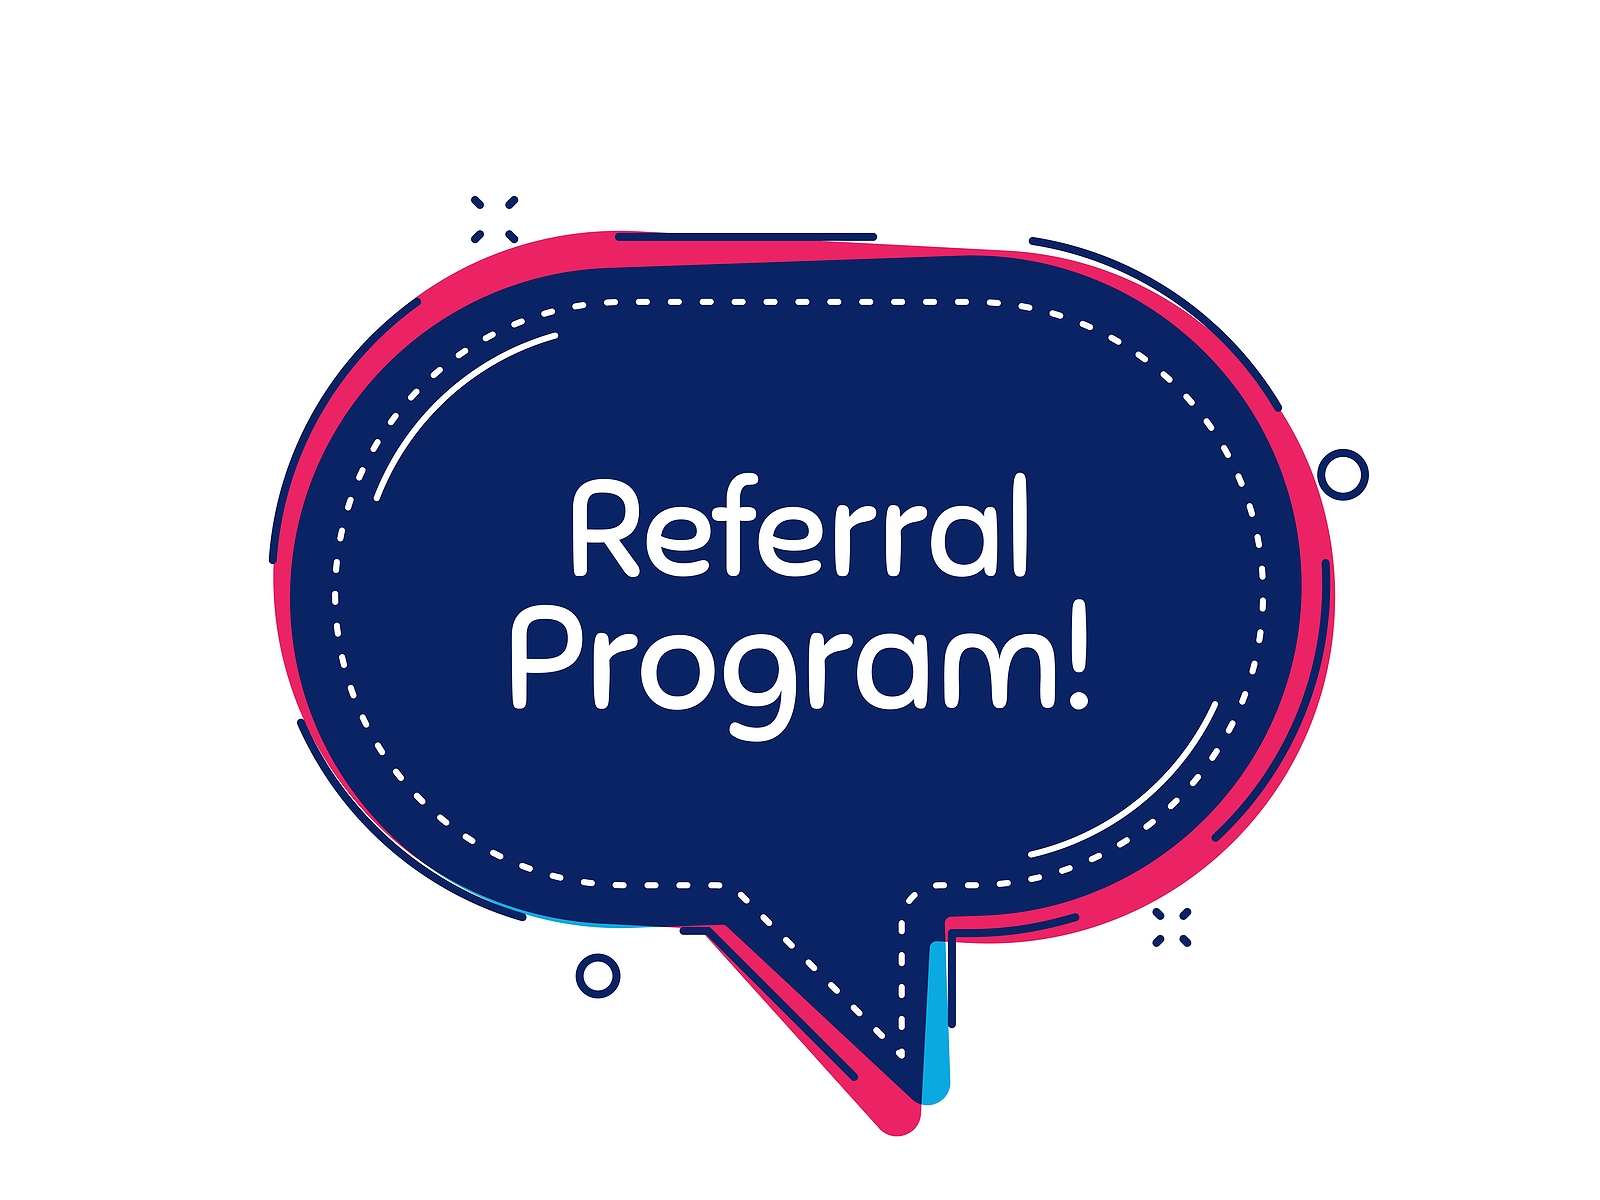 Referral program speech bubble